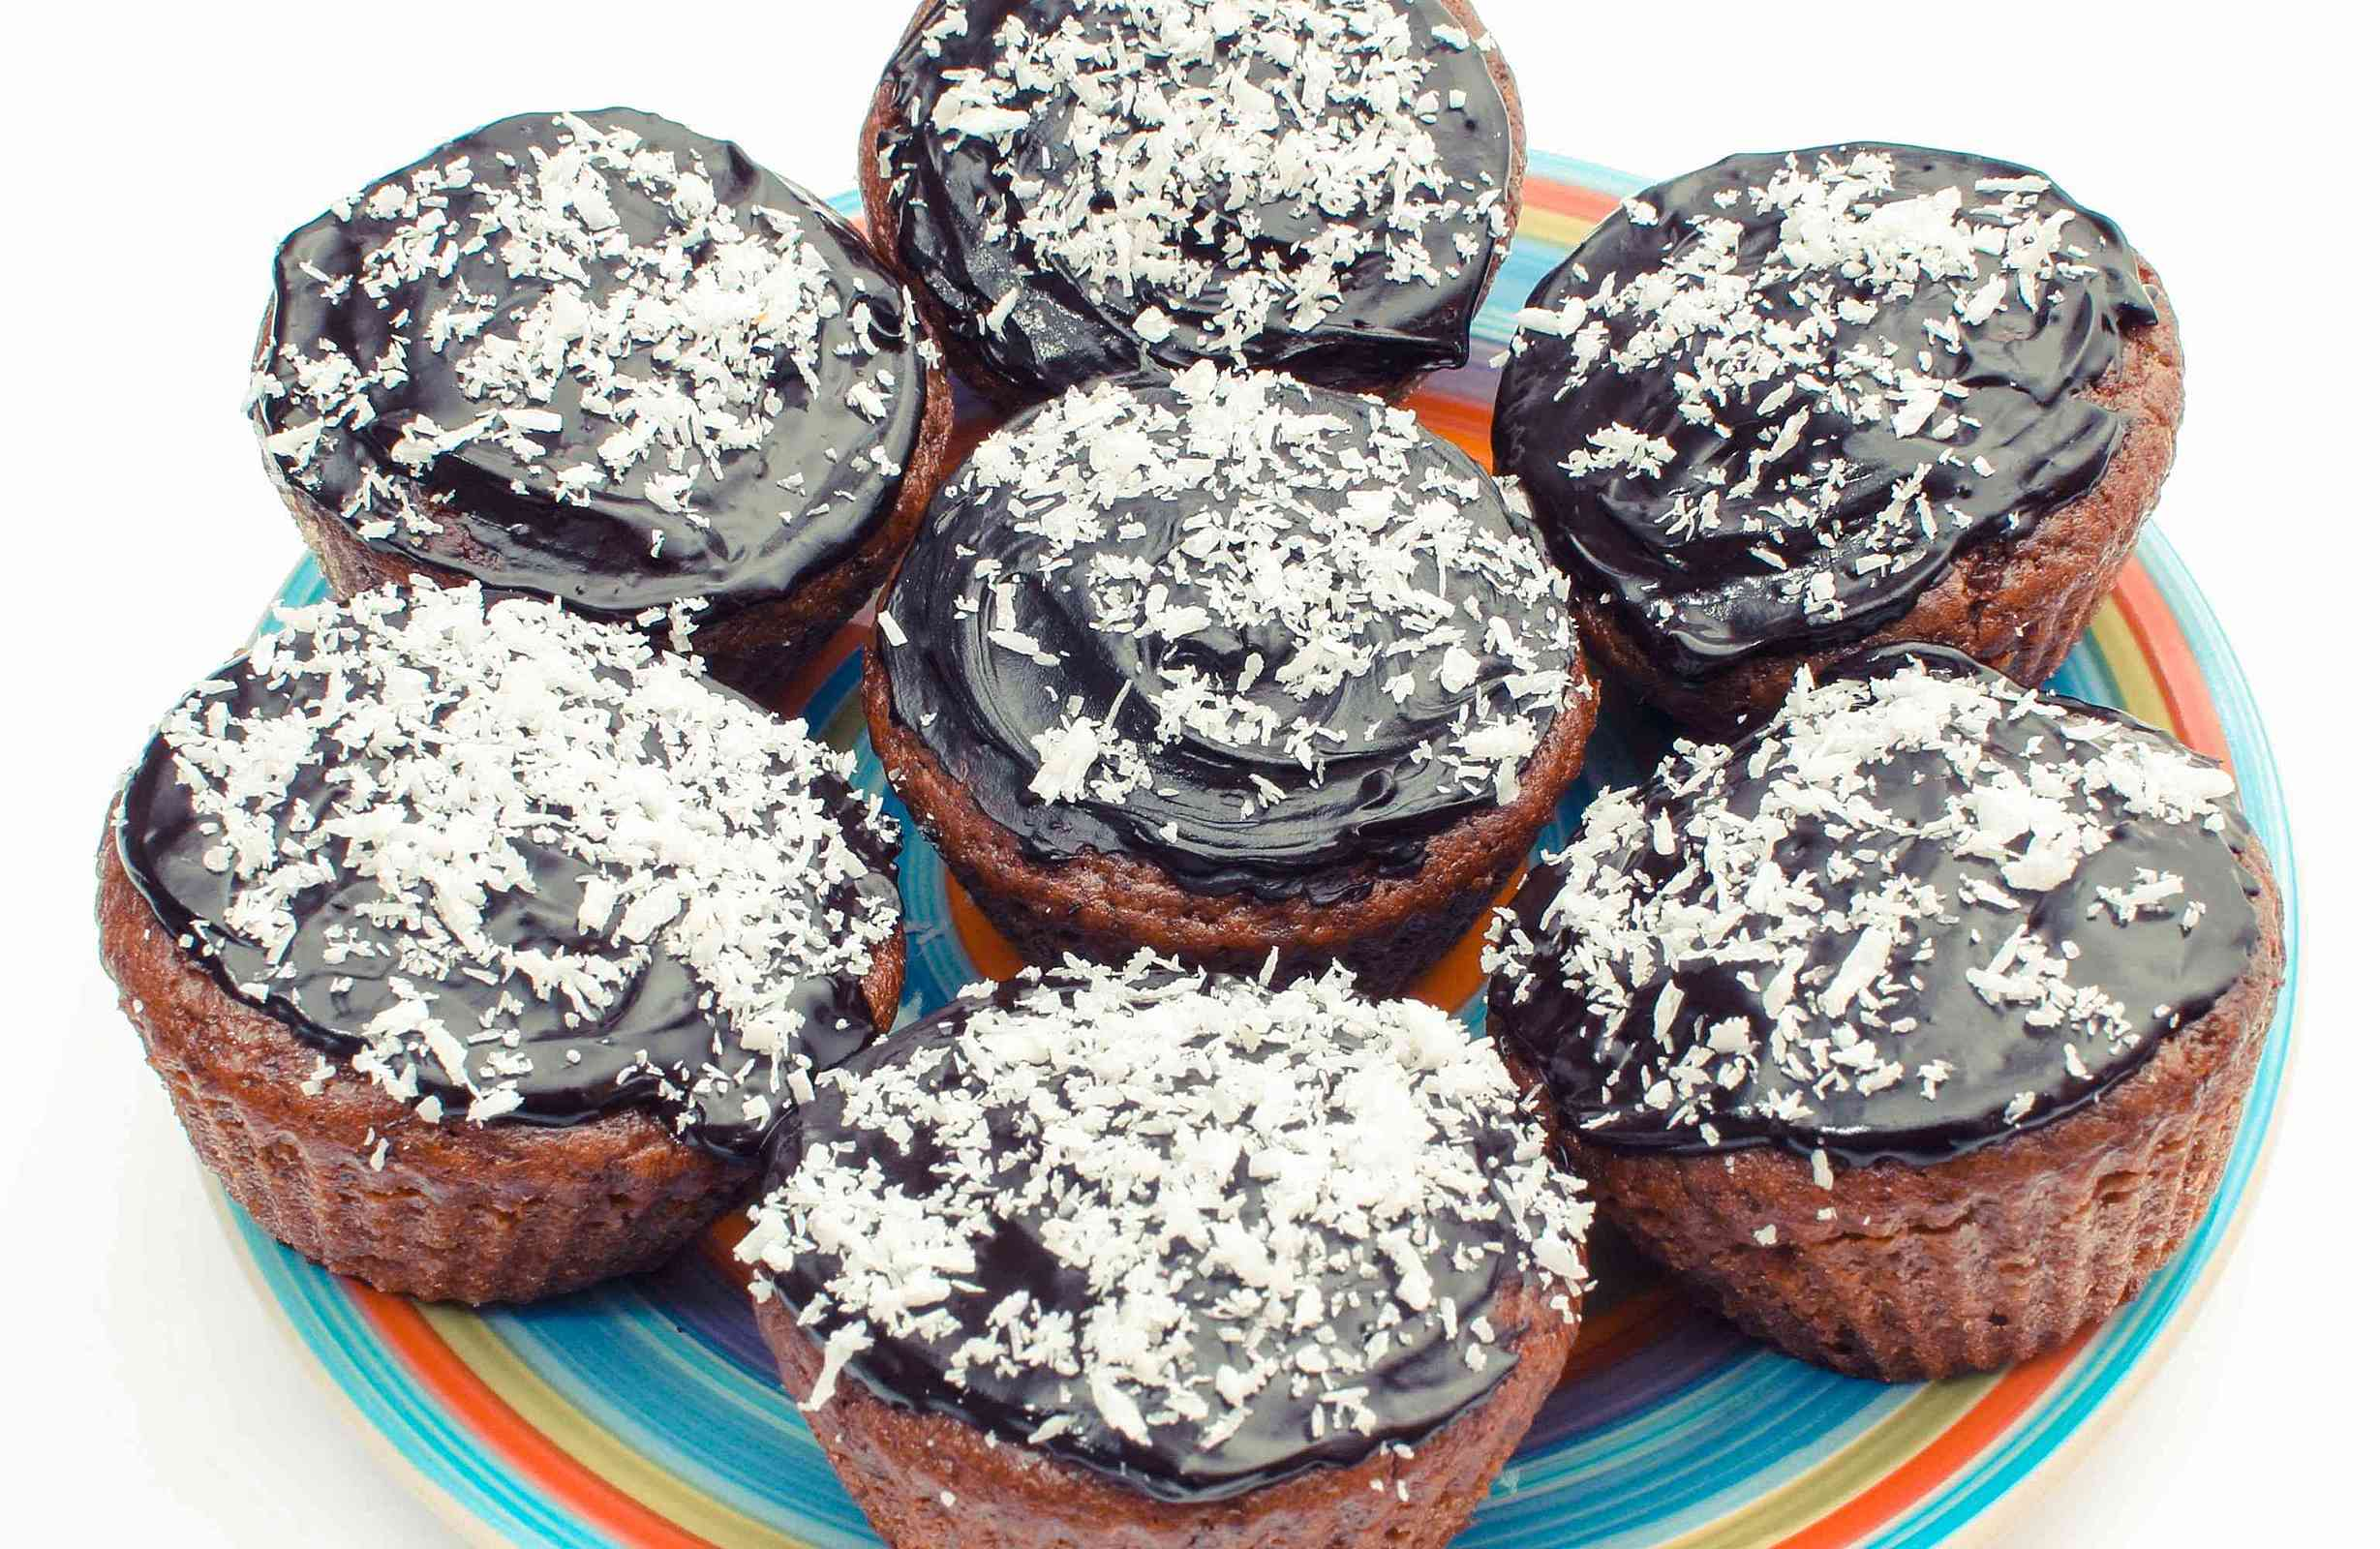 cupcakes saludables